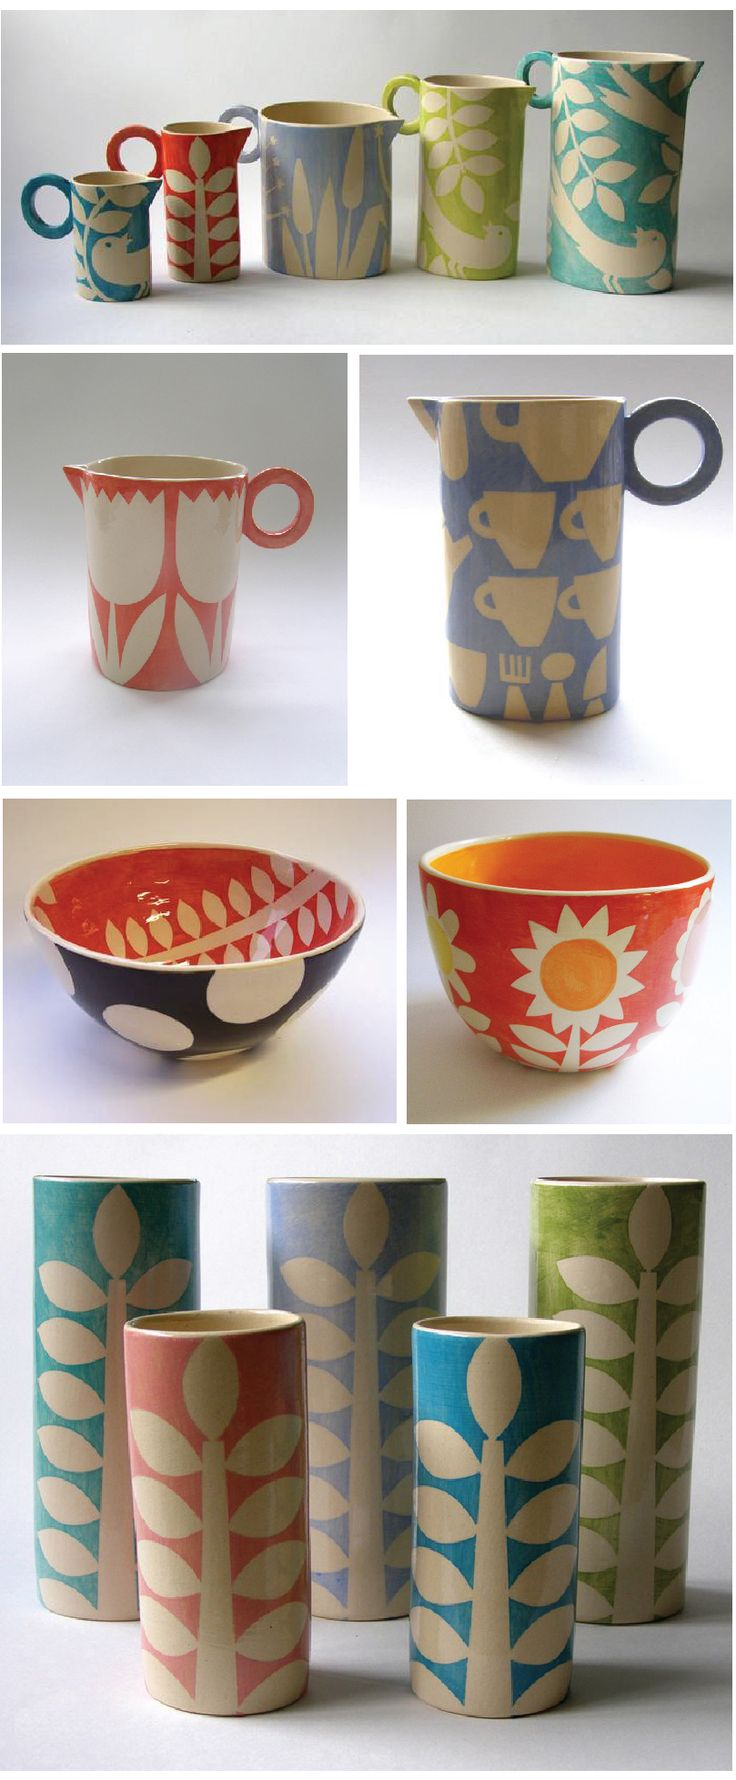 nice, easy patterns ....... Ceramic pieces of Brighton-based artist, Ken Eardley. He has taken his background as textile designer and applied his knowledge and ideas into this bold and colorful collection of ceramics. You can see his portfolio here at Yellow House Art.    Images: Courtesy of Ken Eardley and Yellow House Art.